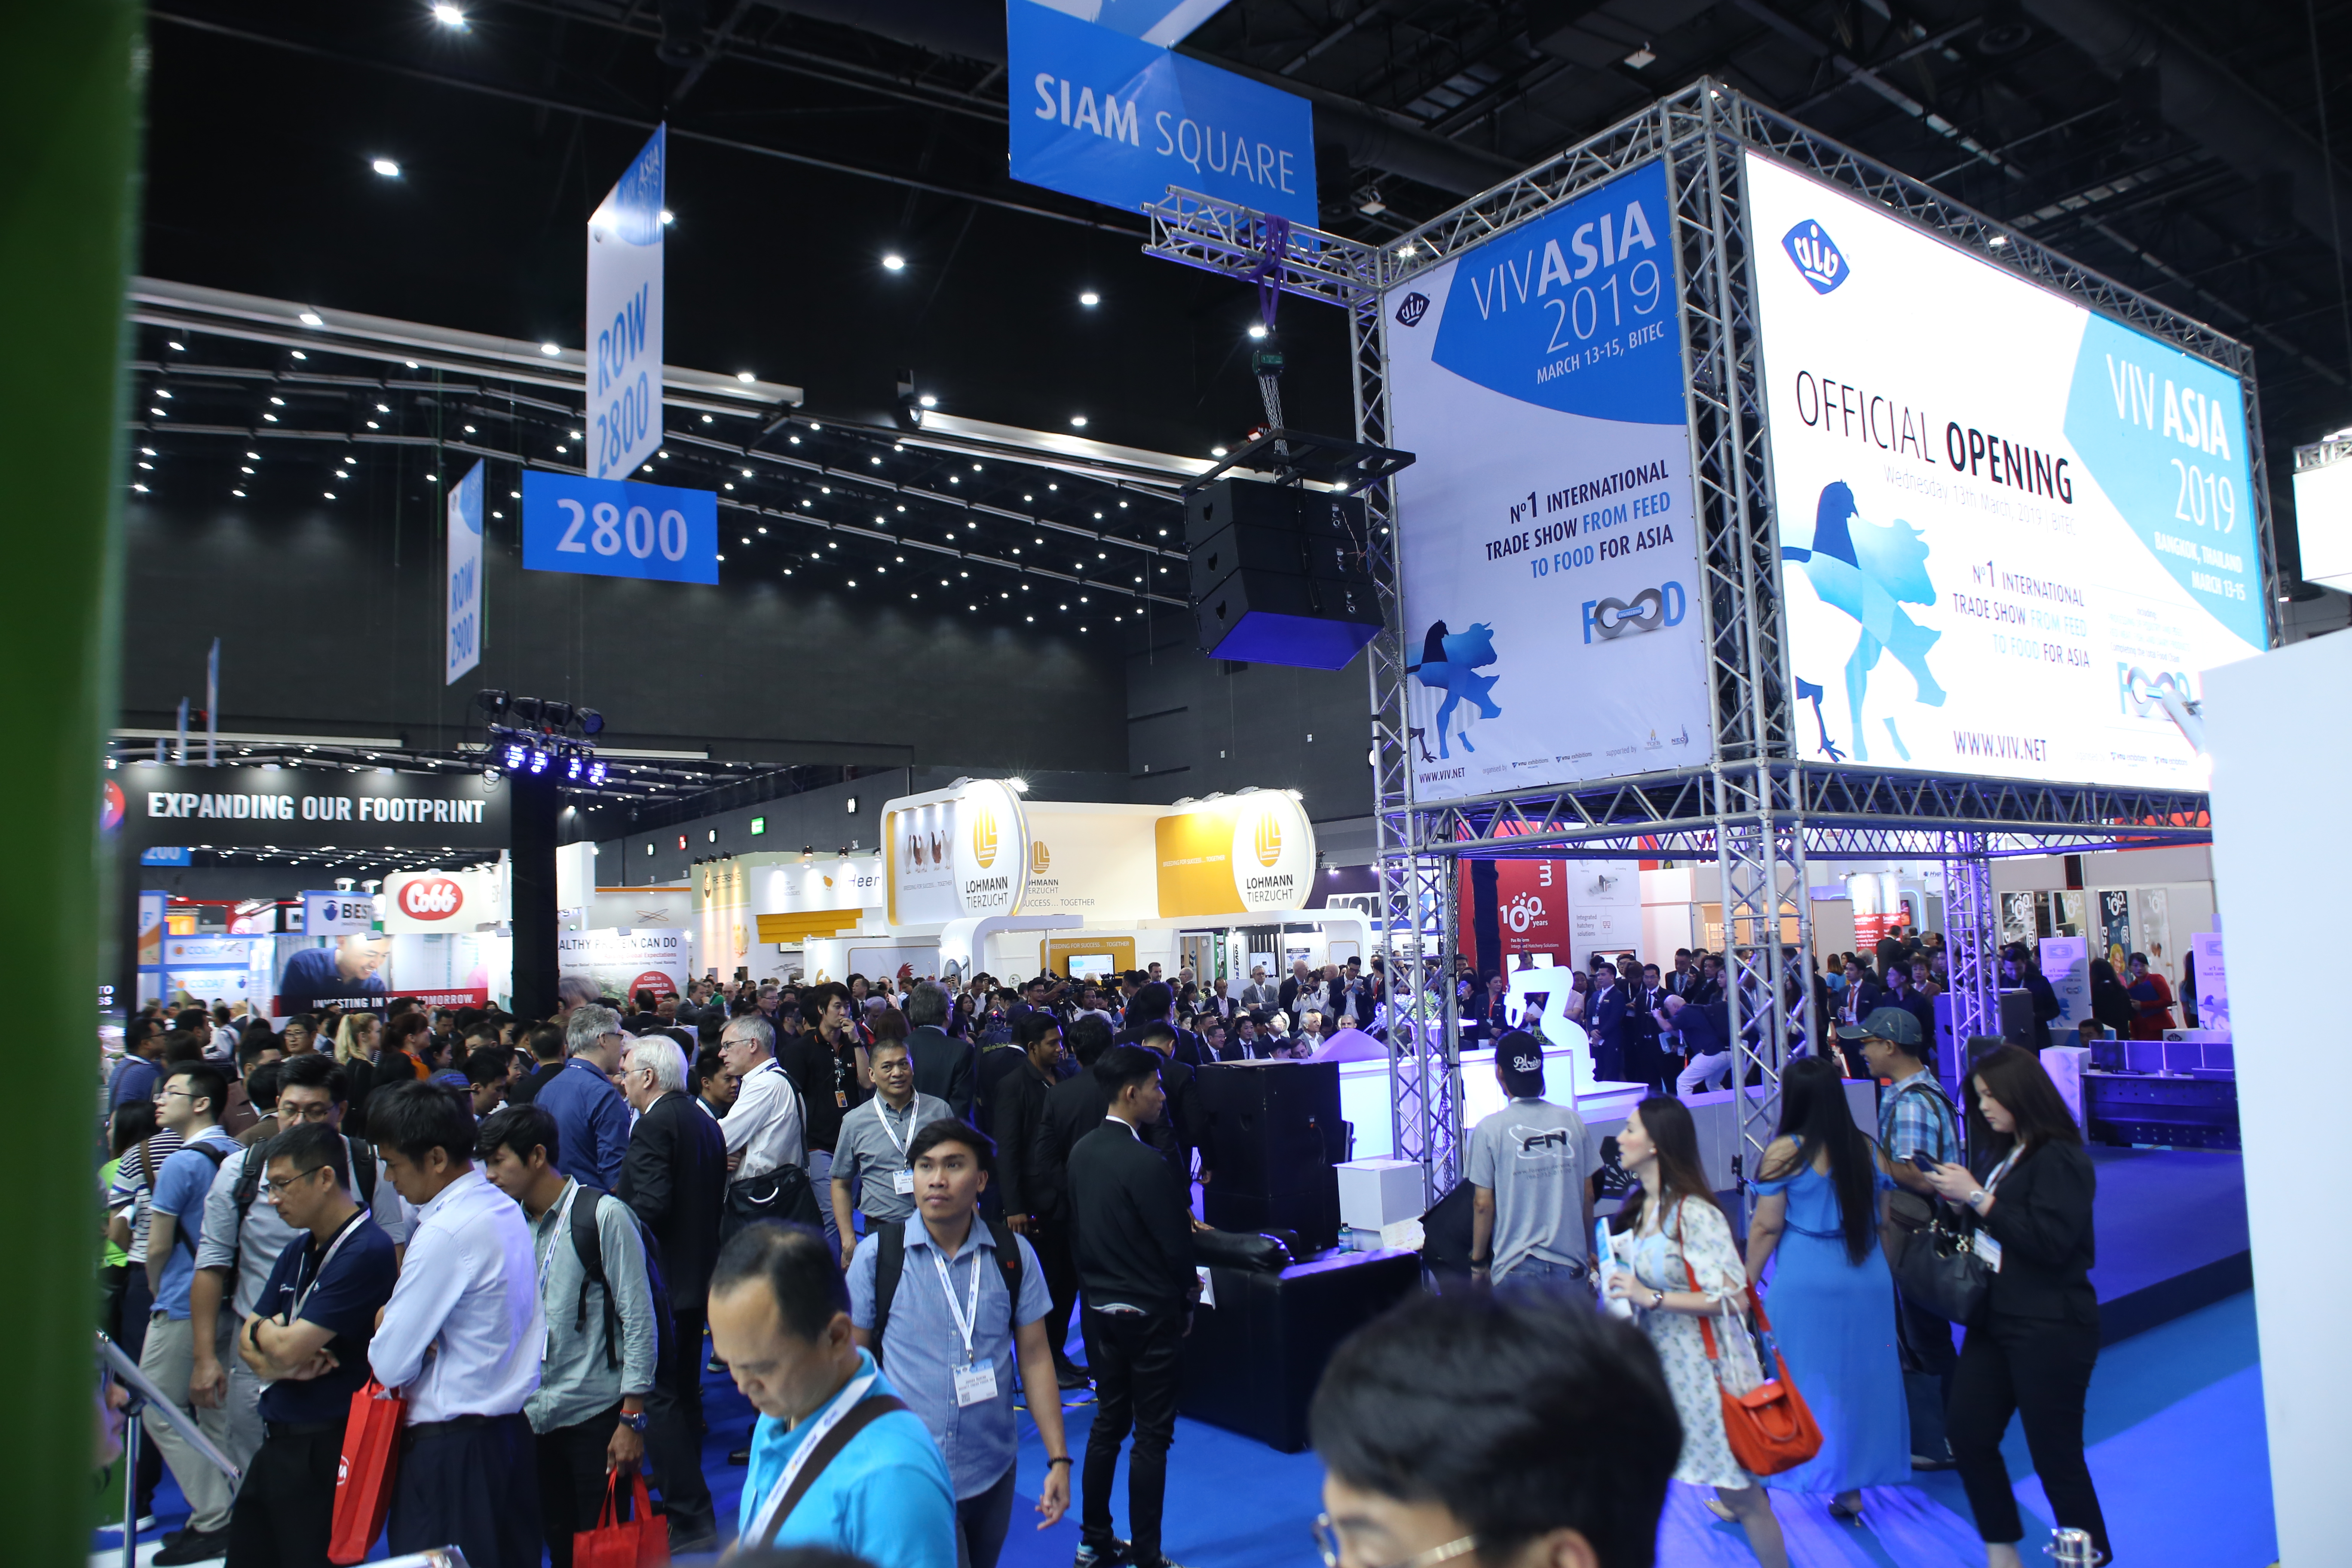 VIV Asia 2019 wins visitors' increase from overseas The show